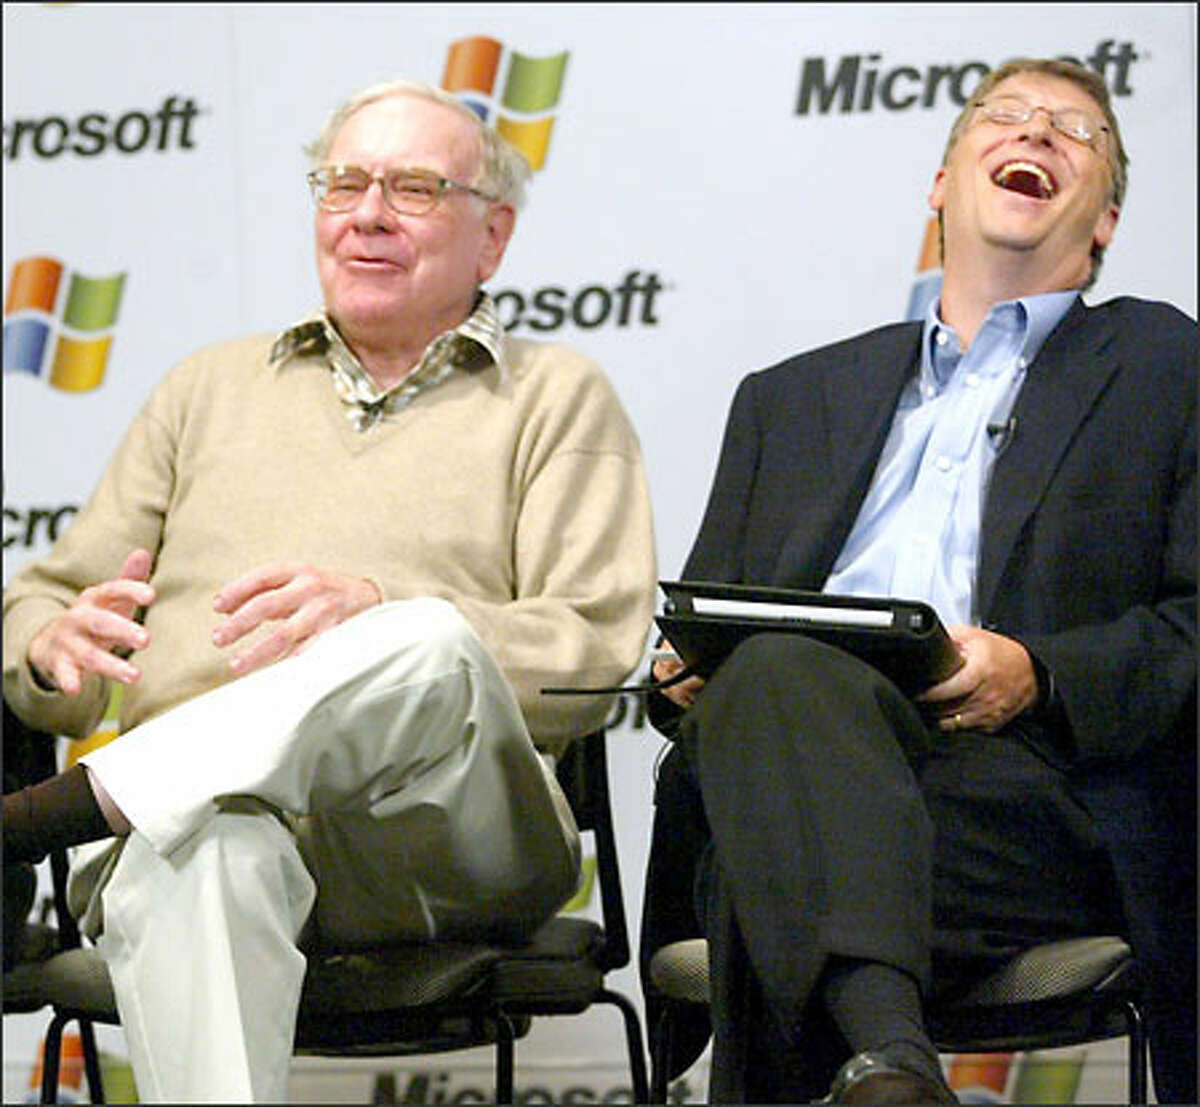 Warren Buffett, chairman and chief executive of Berkshire Hathaway, and Bill Gates keep the audience laughing during a news conference at last week's CEO Summit at Microsoft.